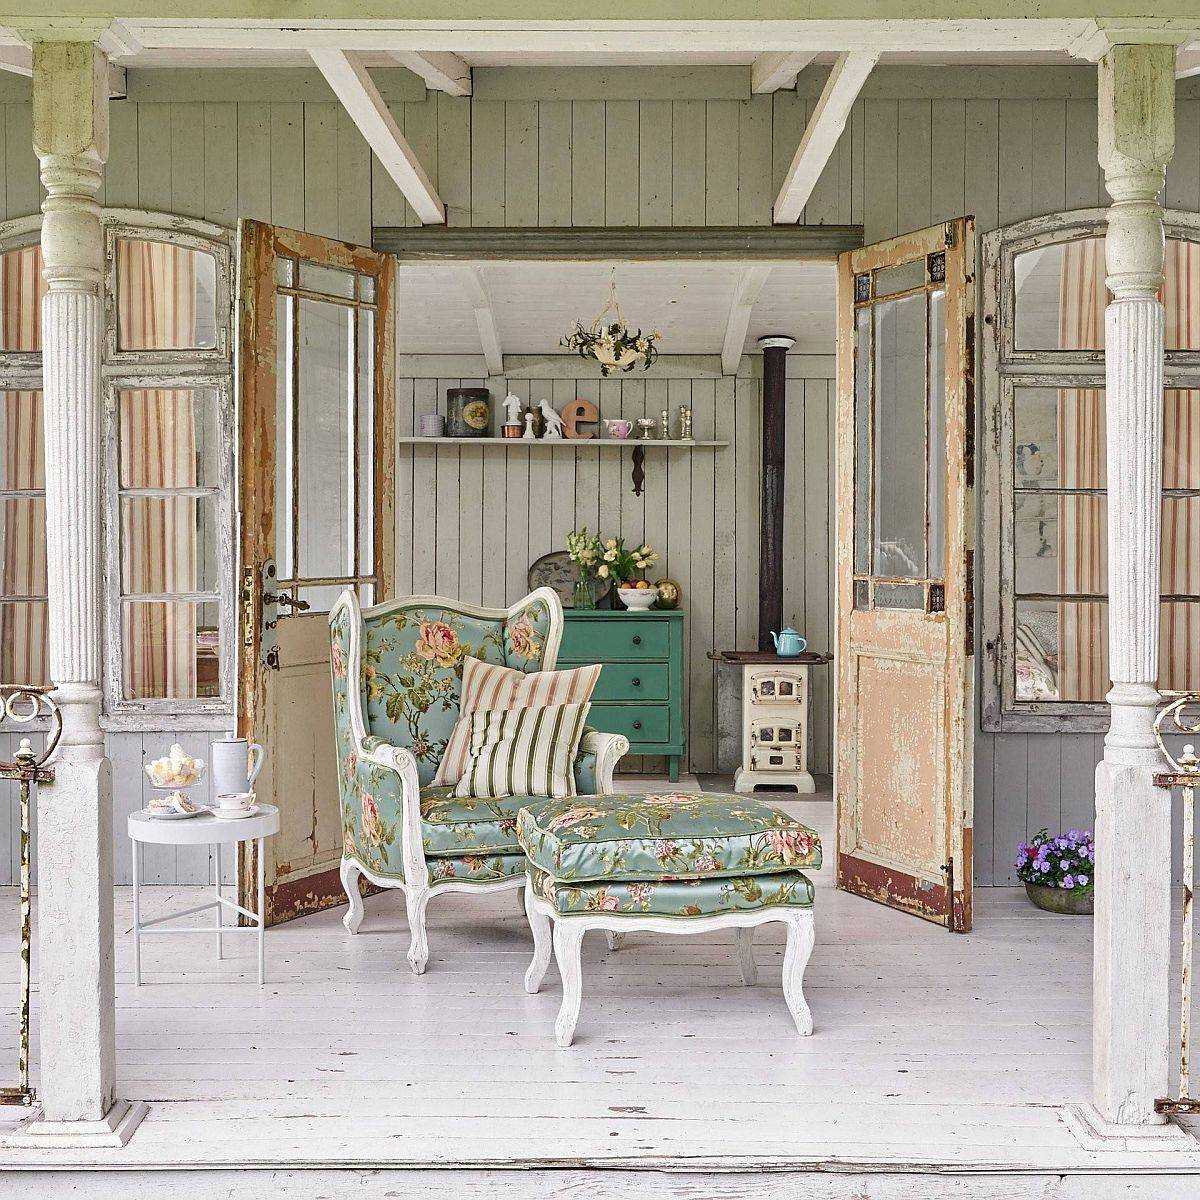 Finding the right vintage decor for your smart shabby-chic porch in white